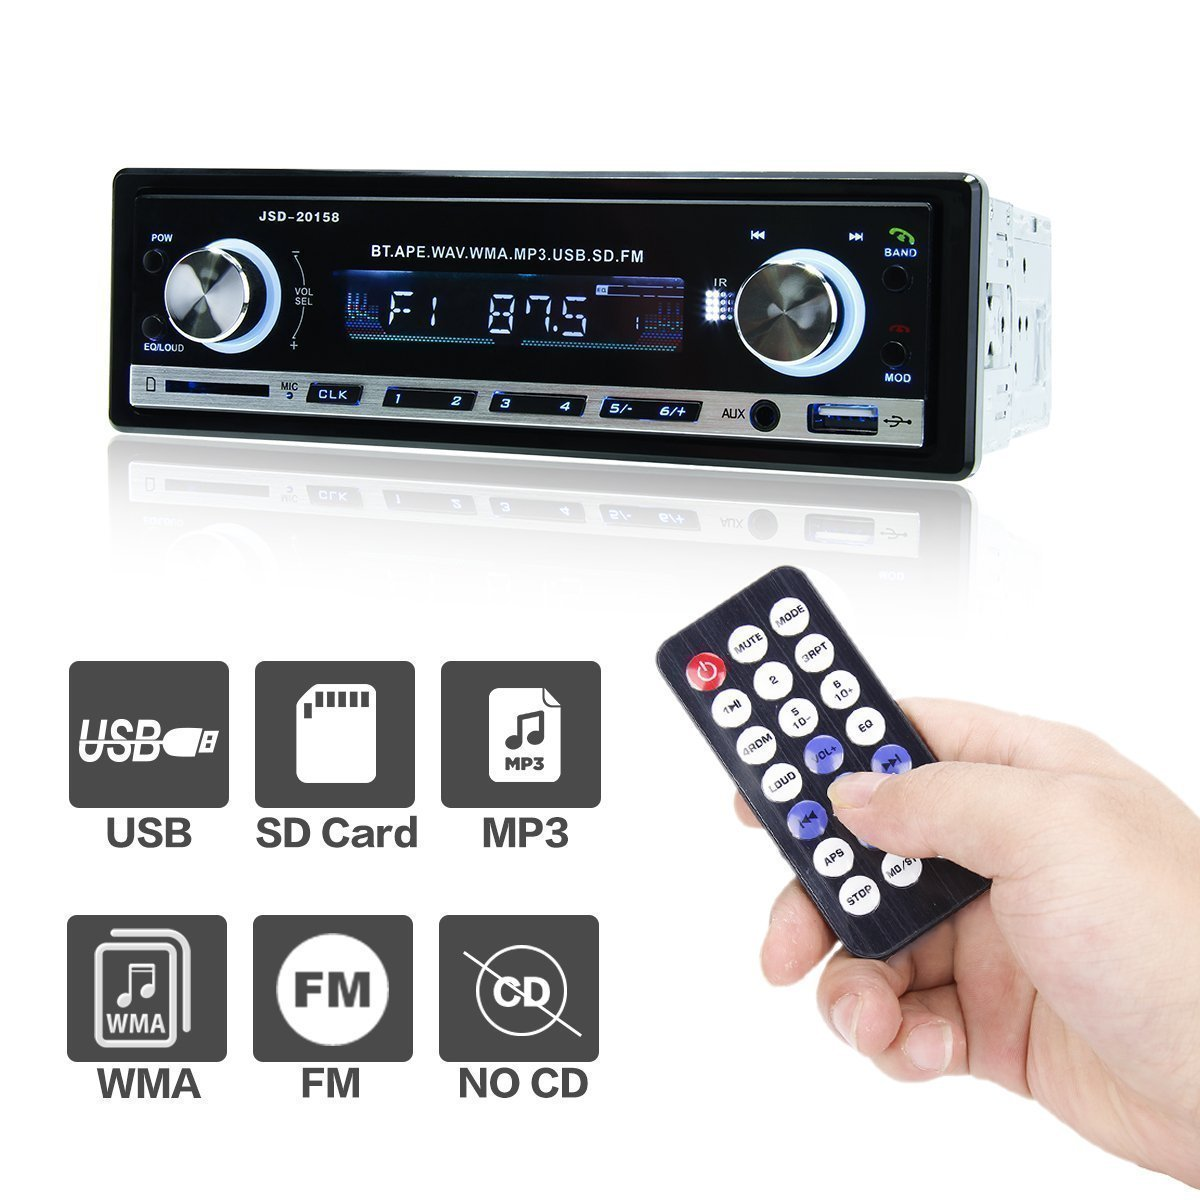 Remote Control POMILE Car MP3 Player Audio FM Receiver with Single-Din Version Car Stereo Bluetooth USB Port and SD Card Slot AUX Receiver